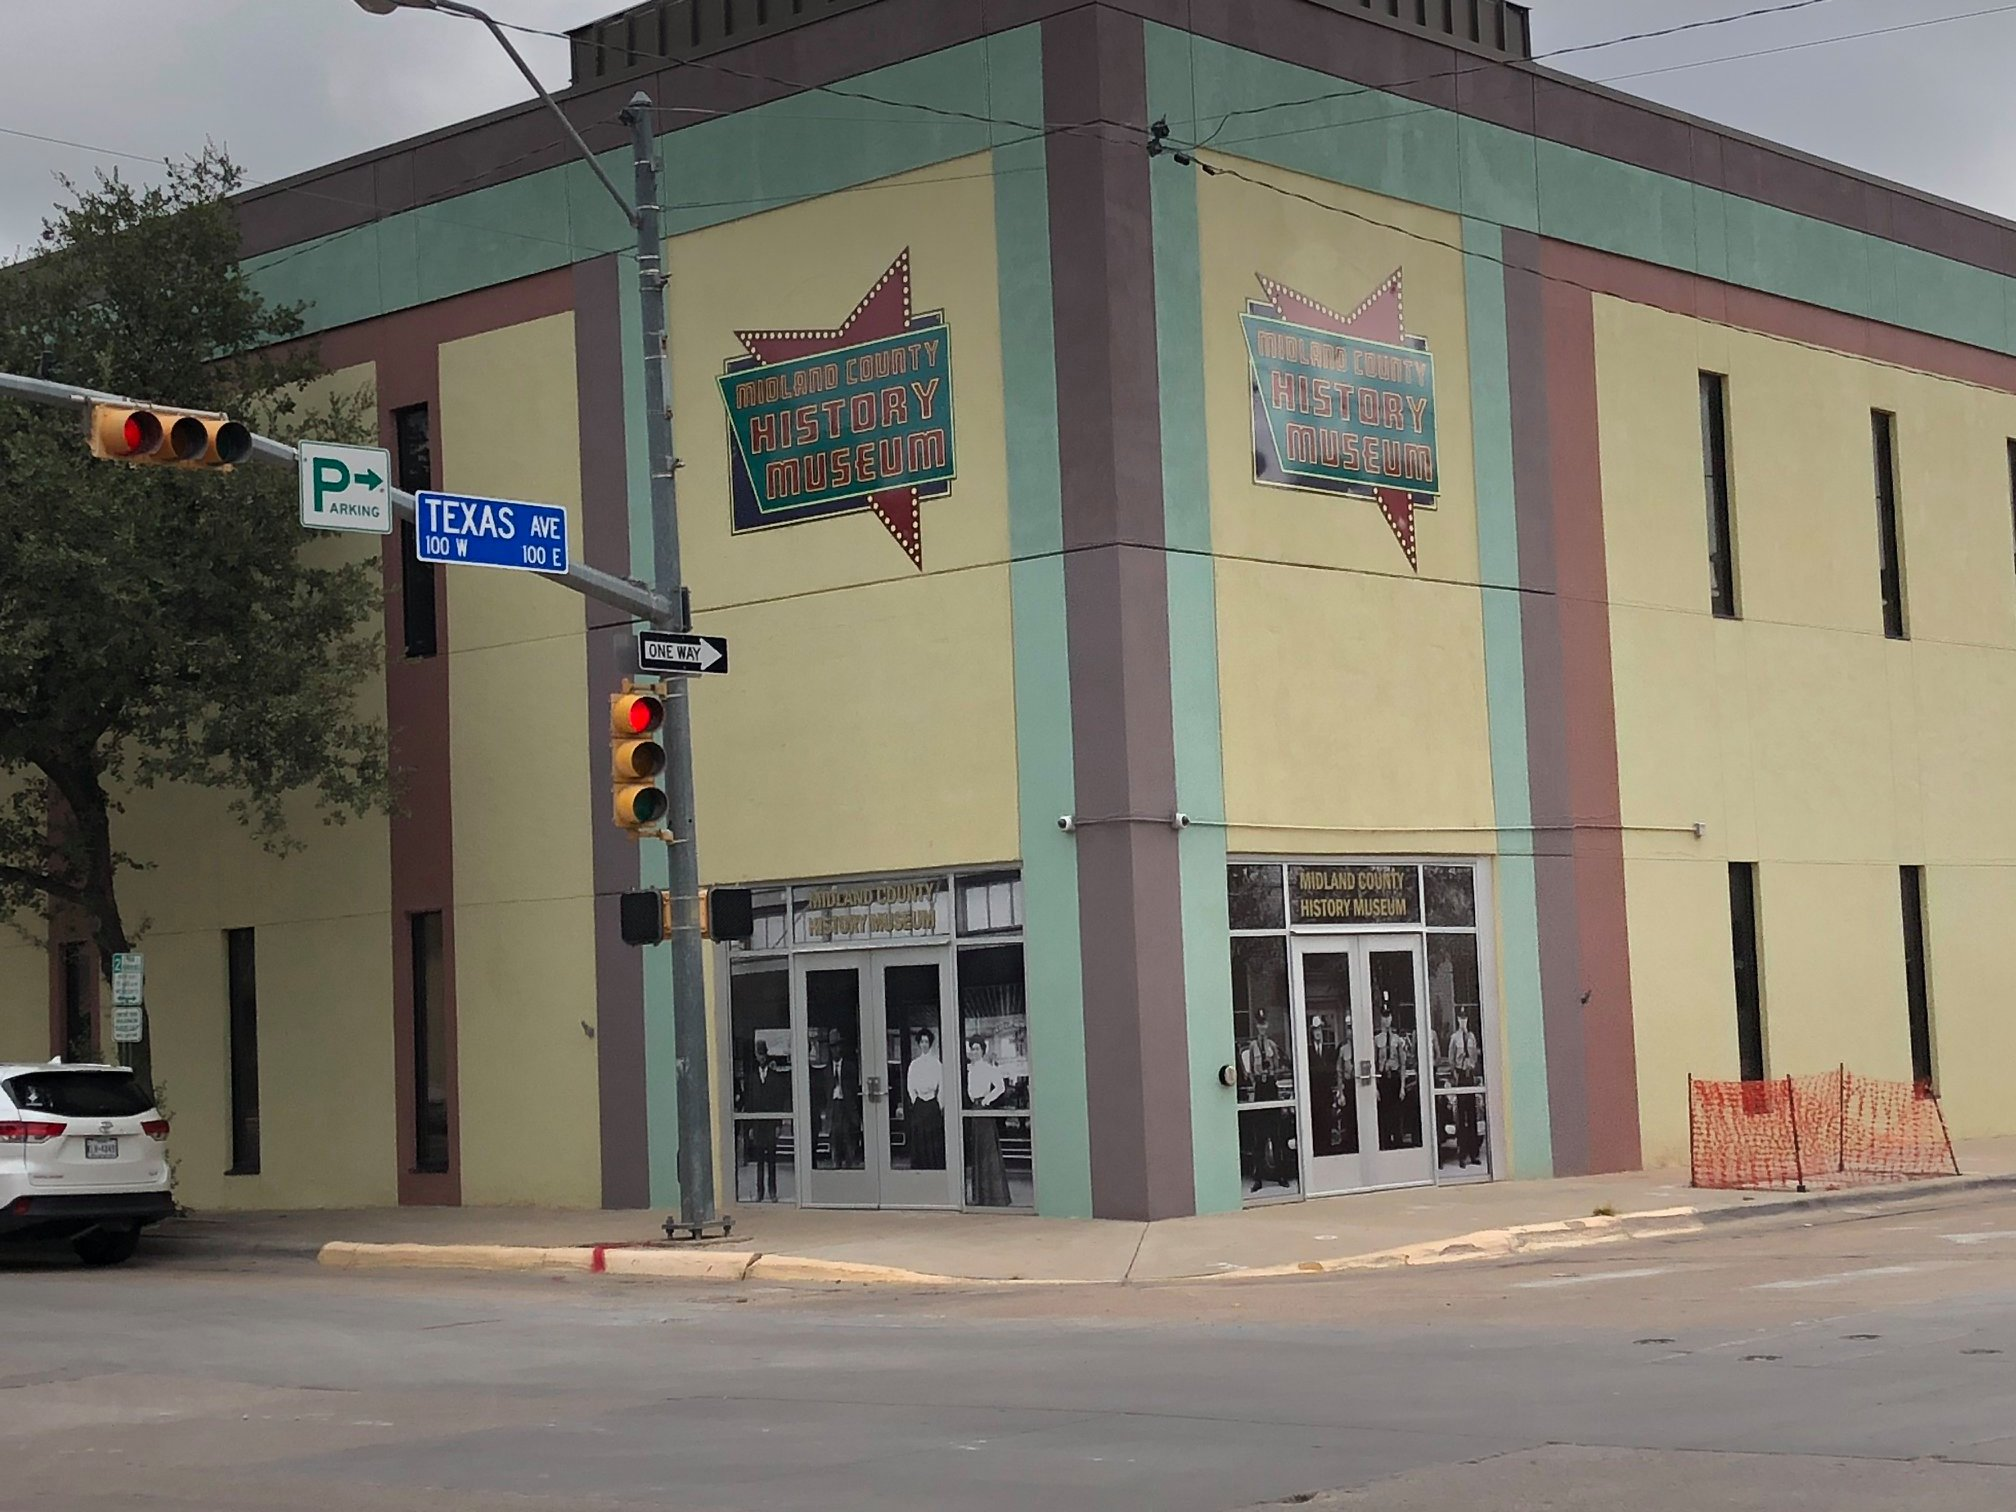 Visit the Midland County History Museum at the corner of Main and Texas.